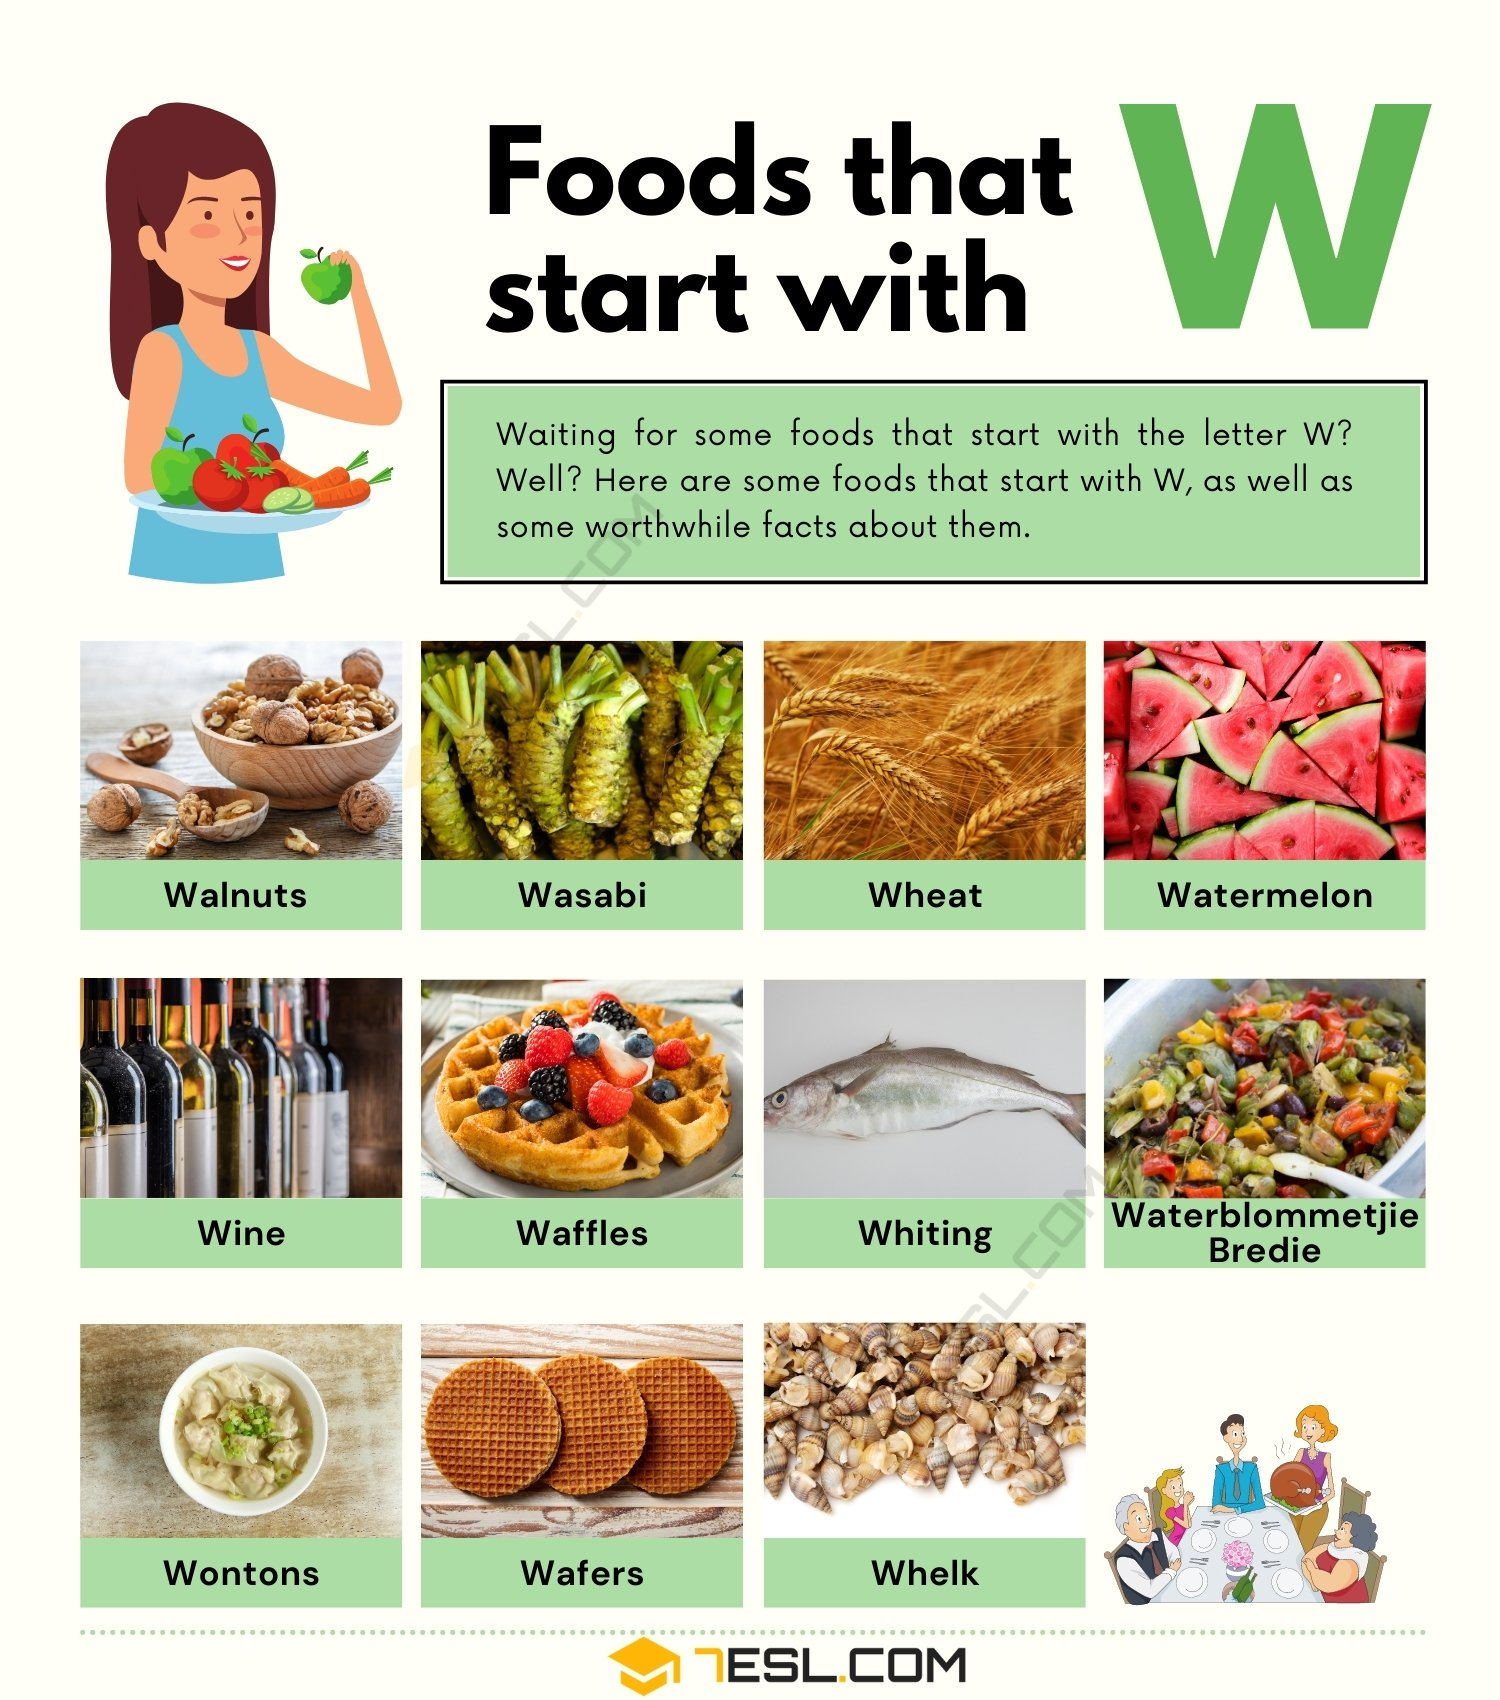 Foods that Start with W: 11 Tasty Foods that Start with W